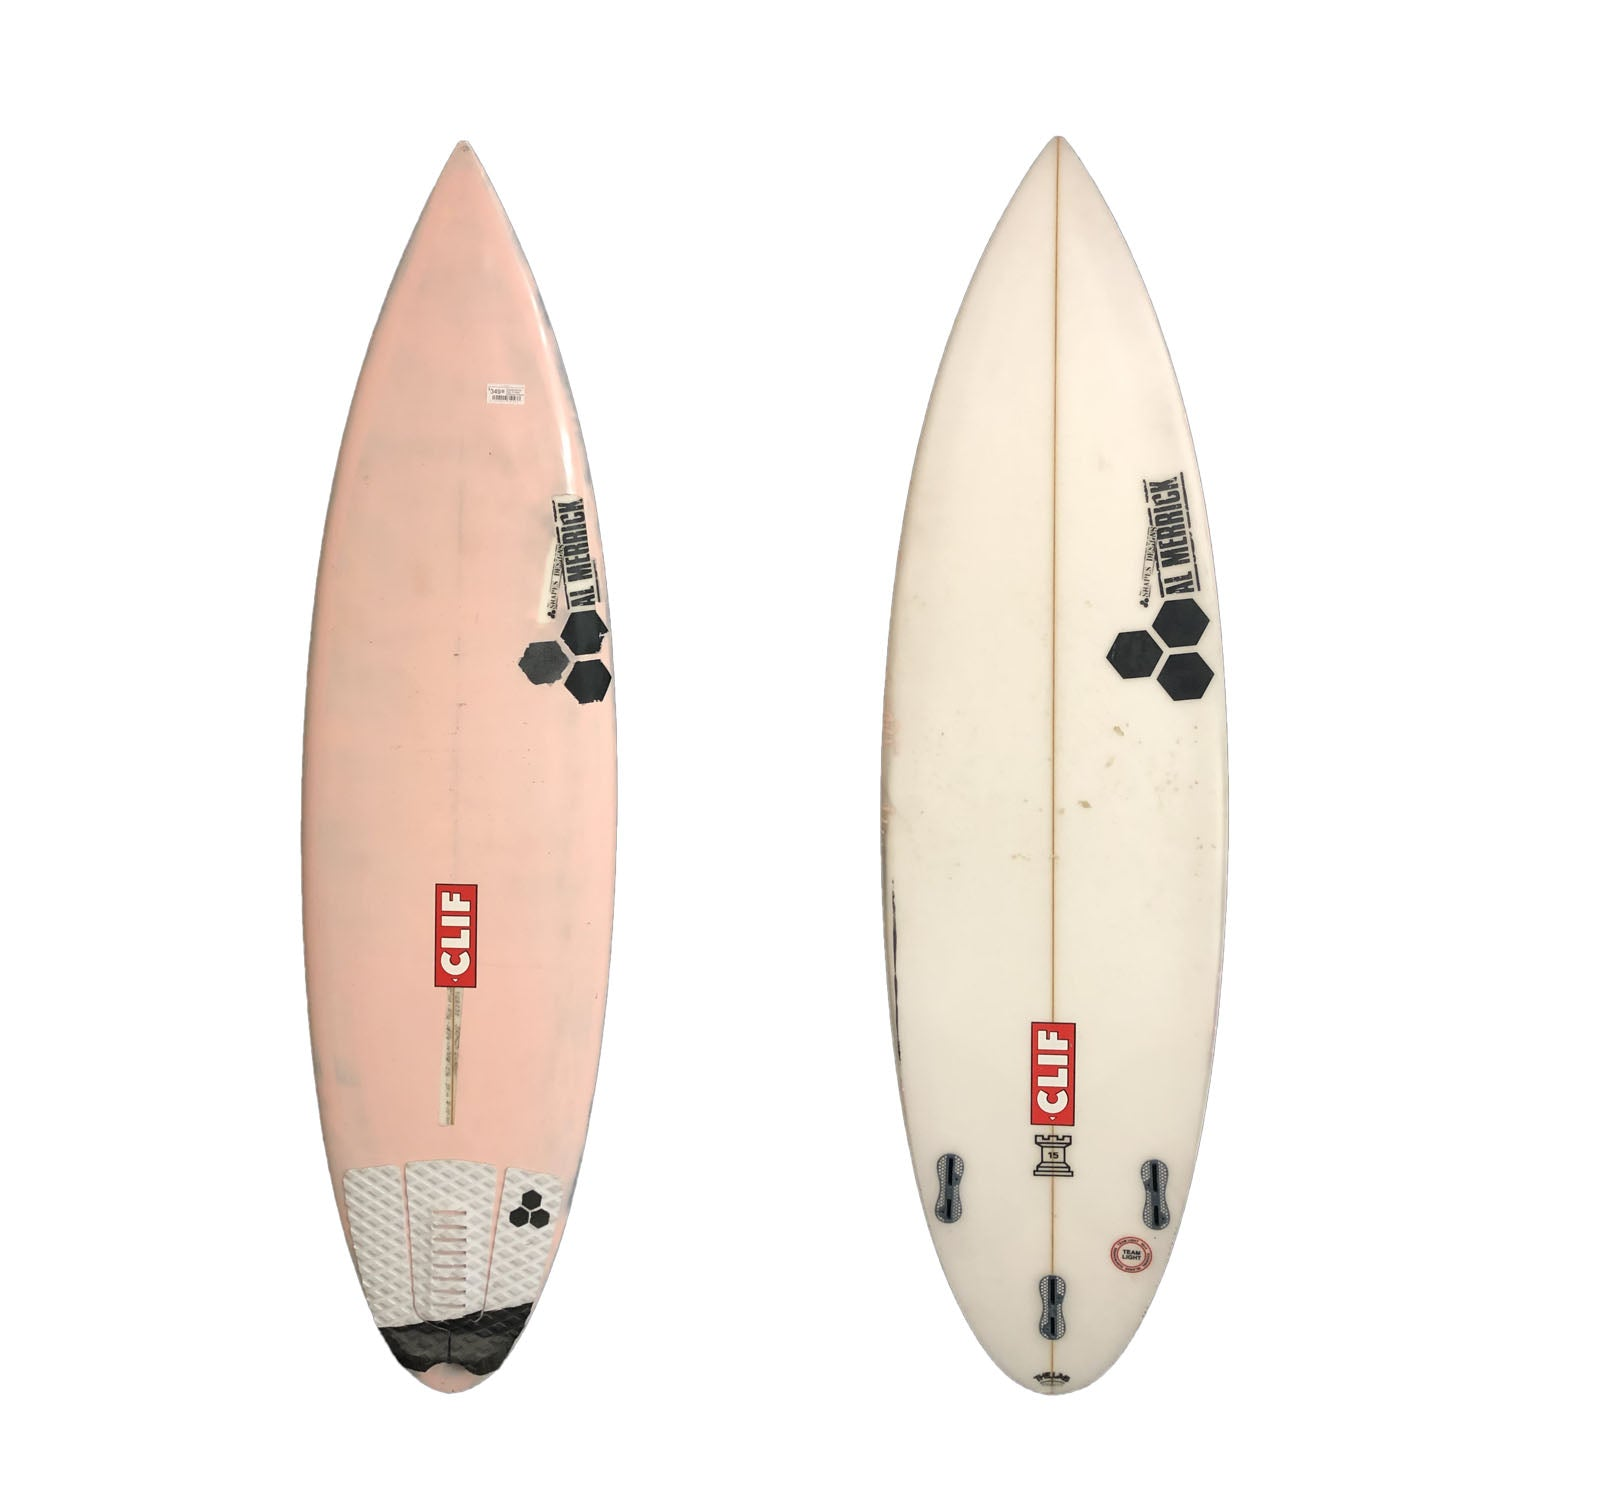 Channel Islands Rook 15 5'10 x 18 1/4 x 2 1/4 25L Used Surfboard (Team Custom For Lakey Peterson)